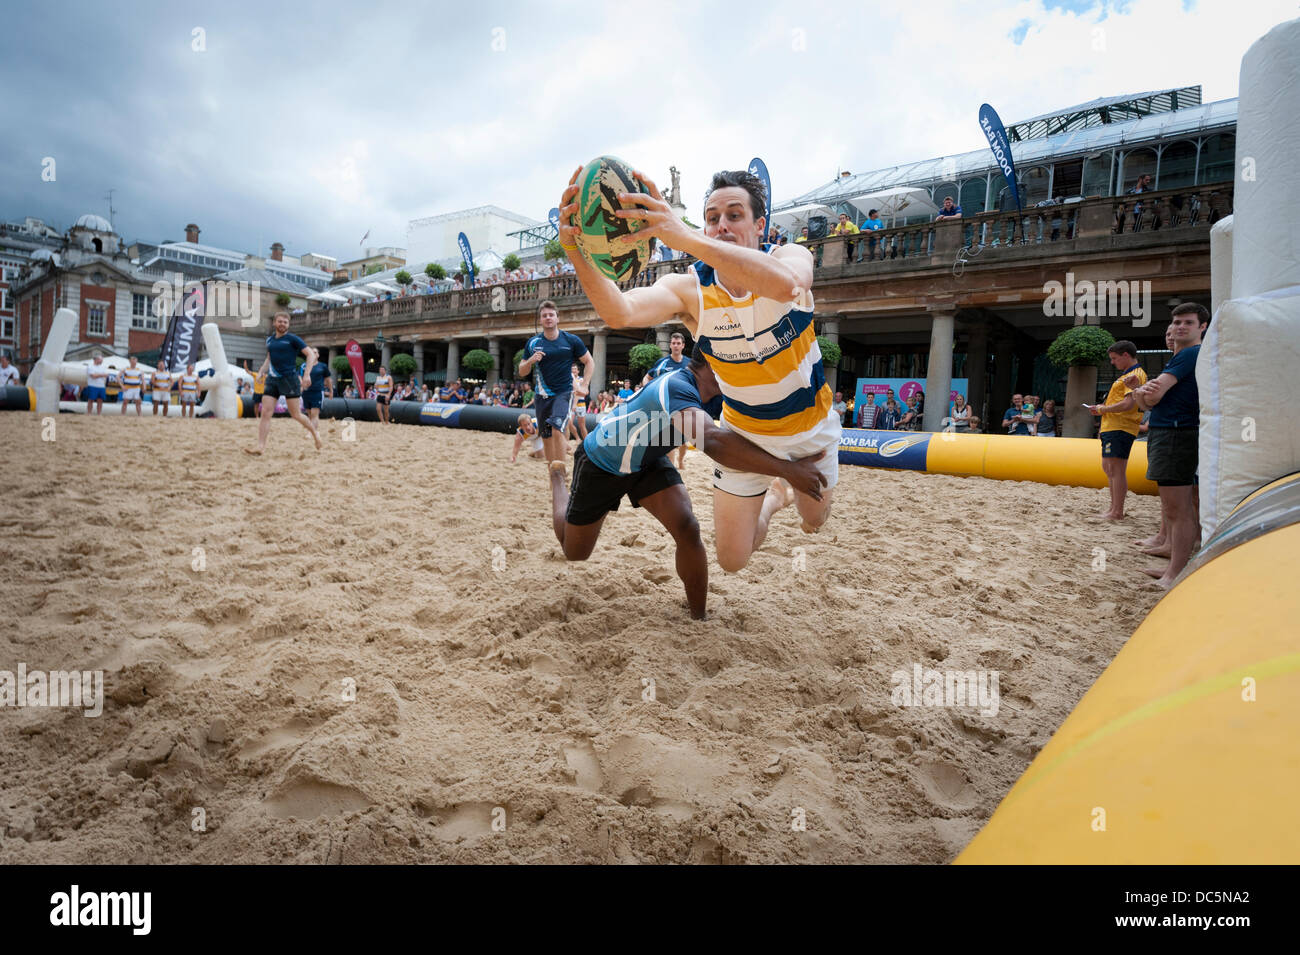 London, UK, 9th August, 2013. Covent Garden hosts the inaugural Doom Bar London Beach Rugby tournament, the location Stock Photo